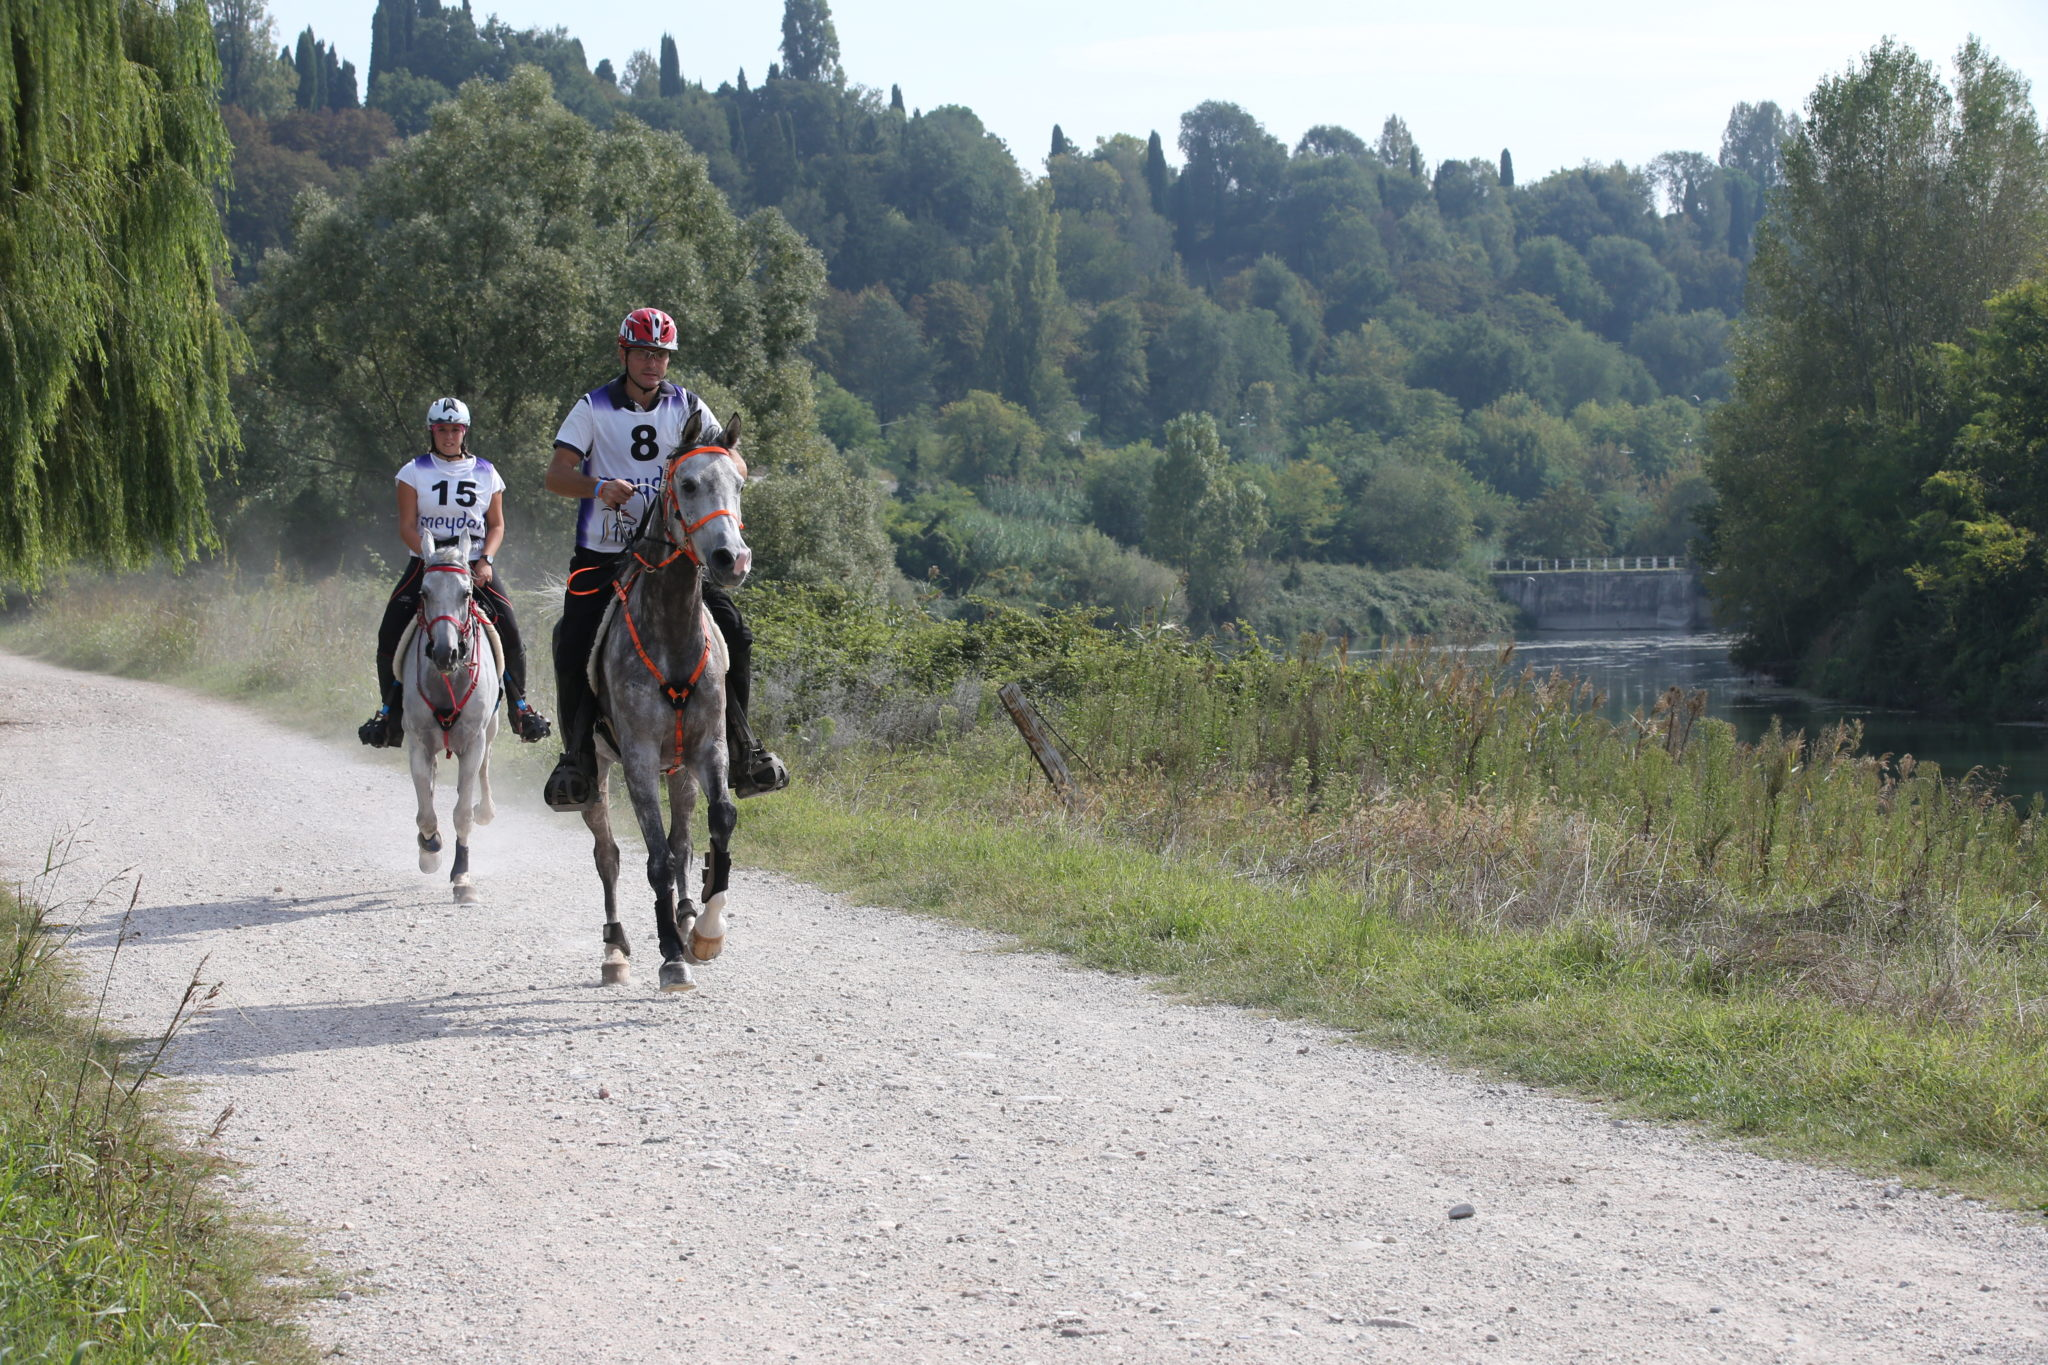 Endurance World Verona. Riding together.